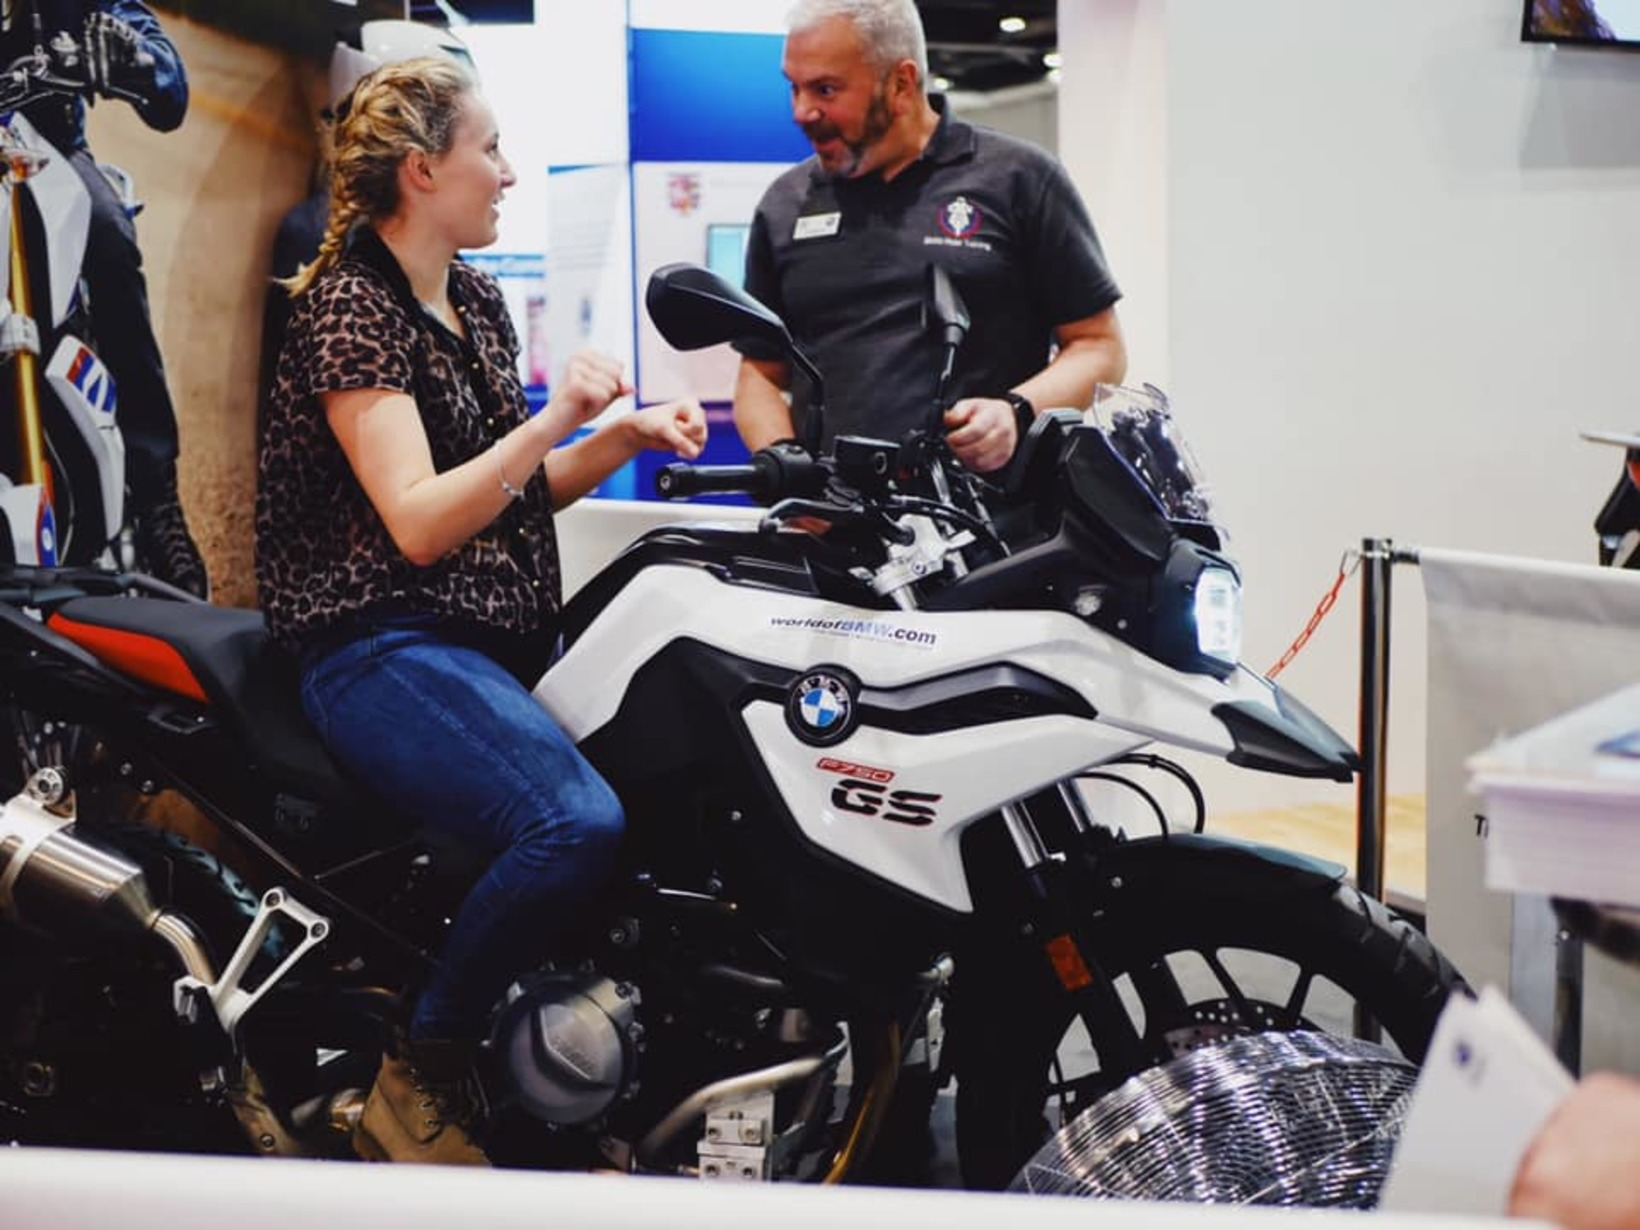 See us at MotorcycleLive 2019!